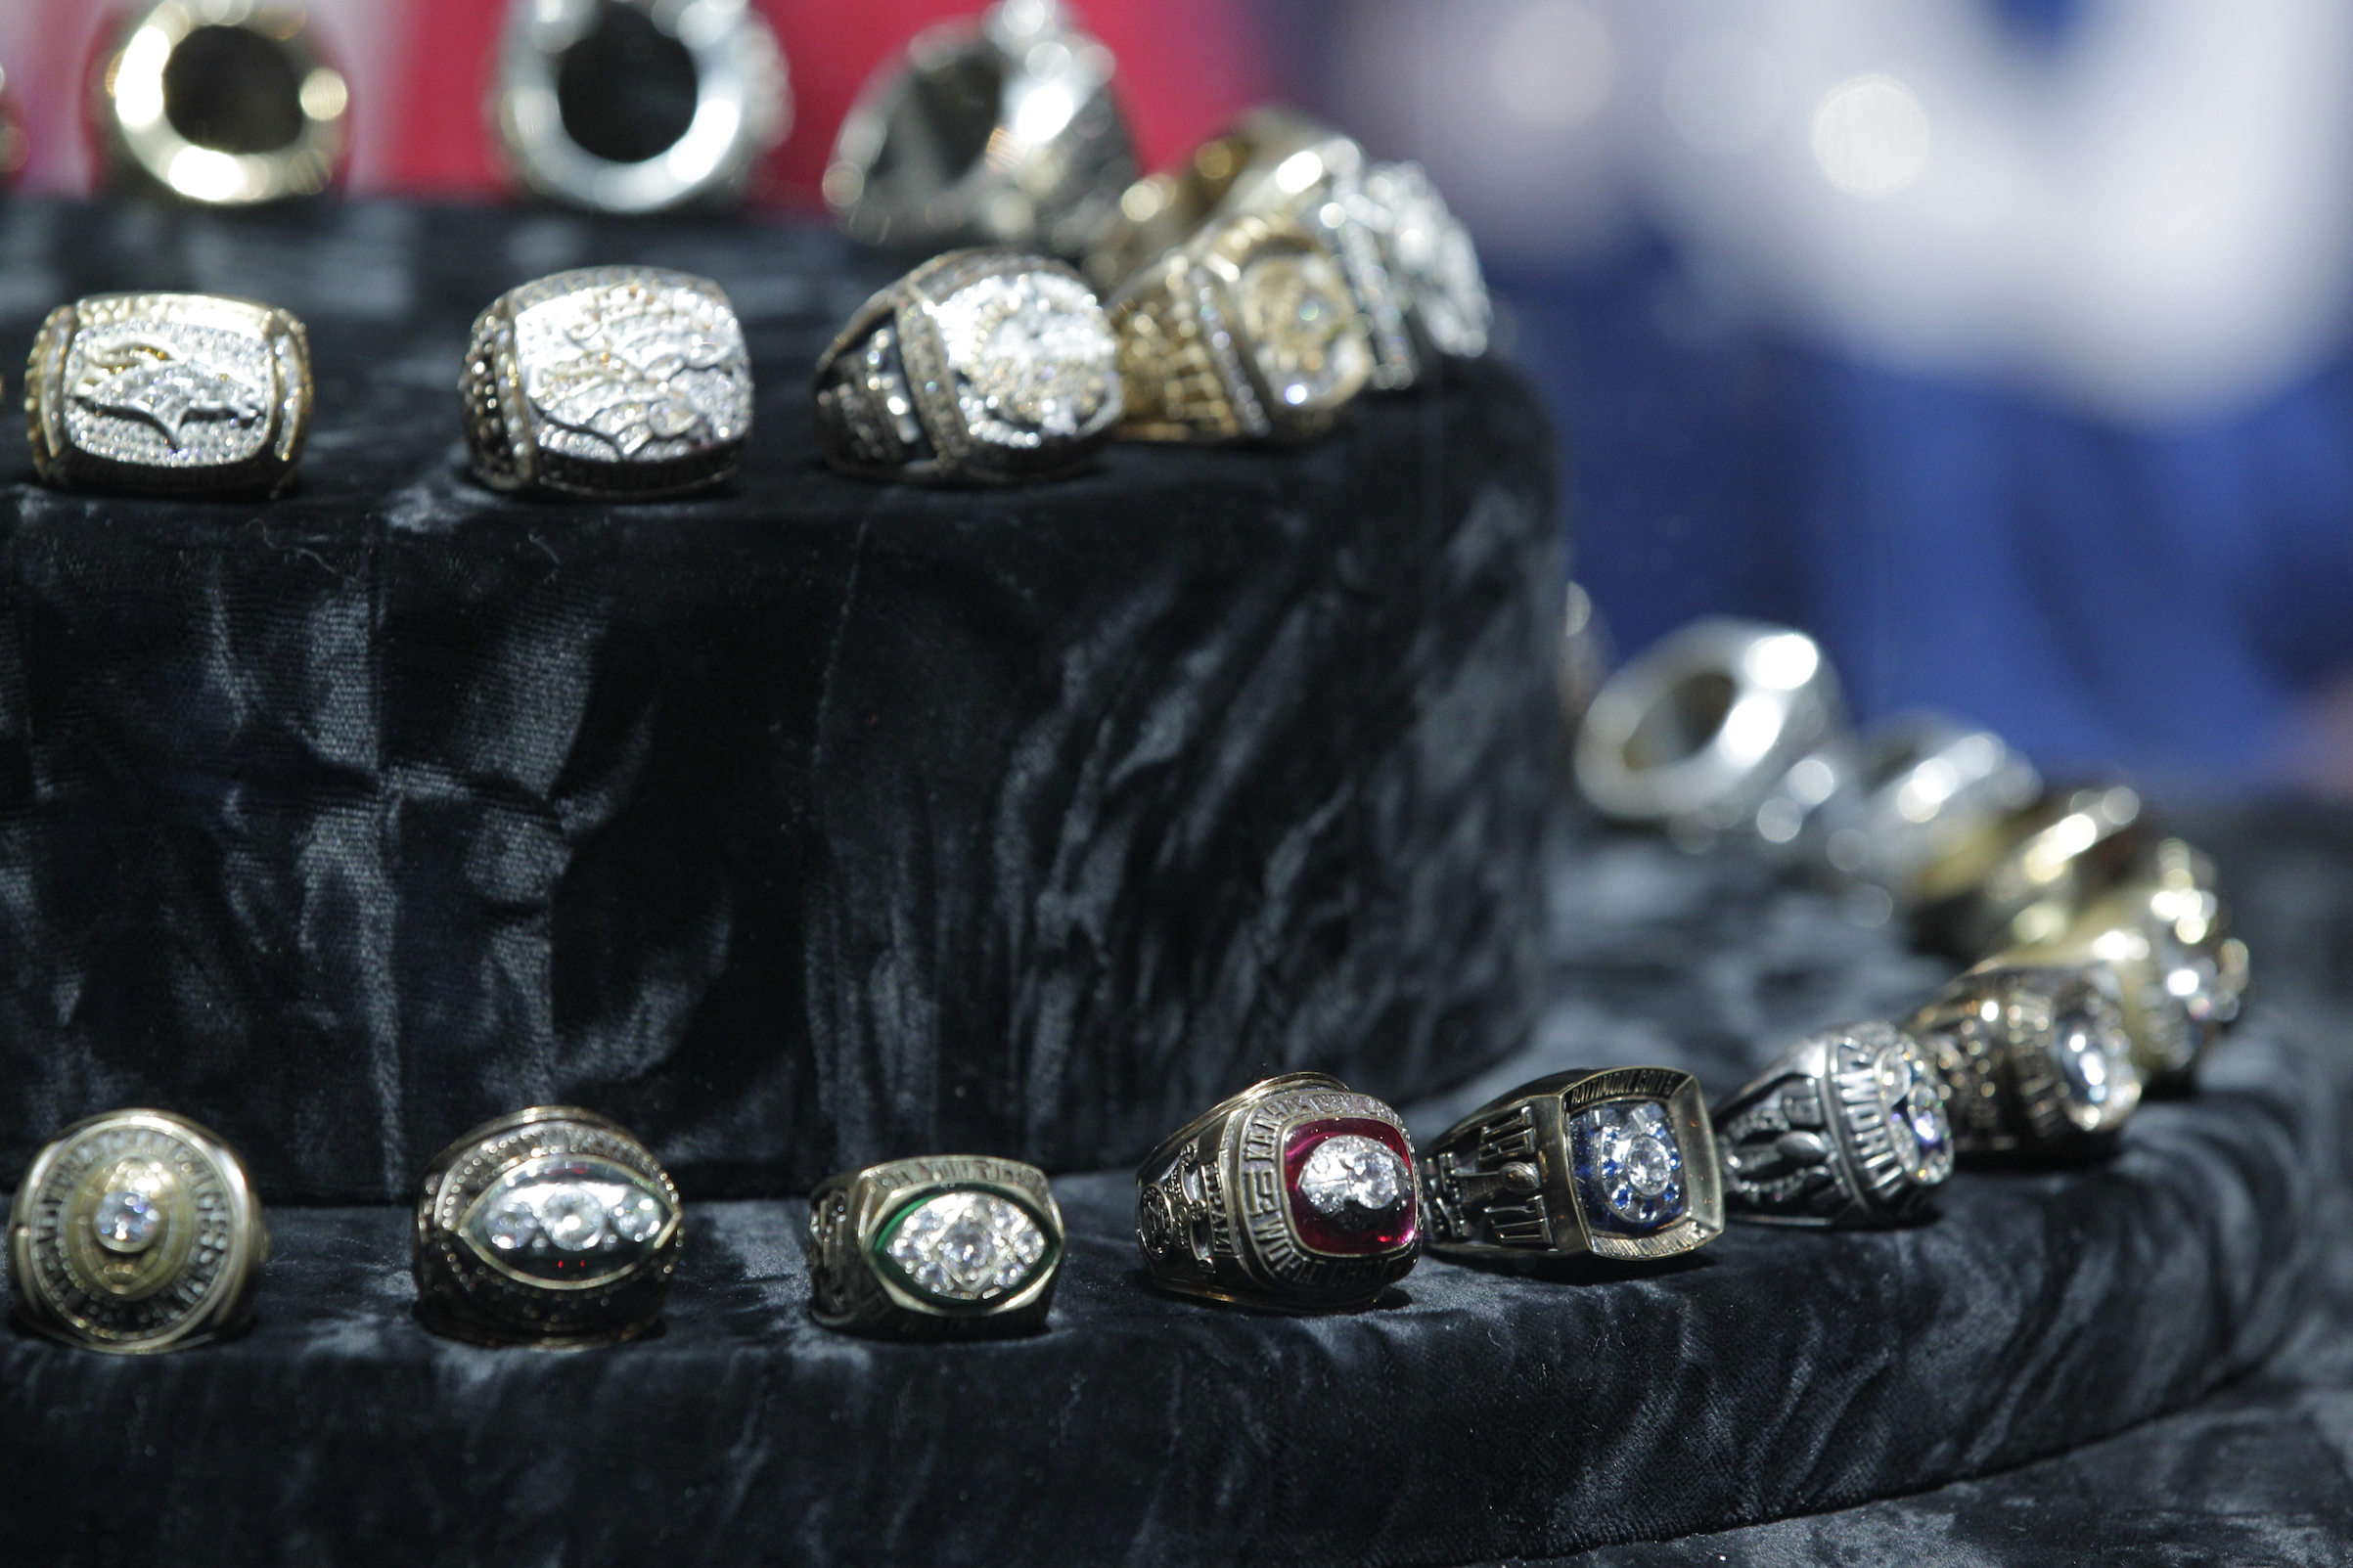 Past Super Bowl rings on display in 2012